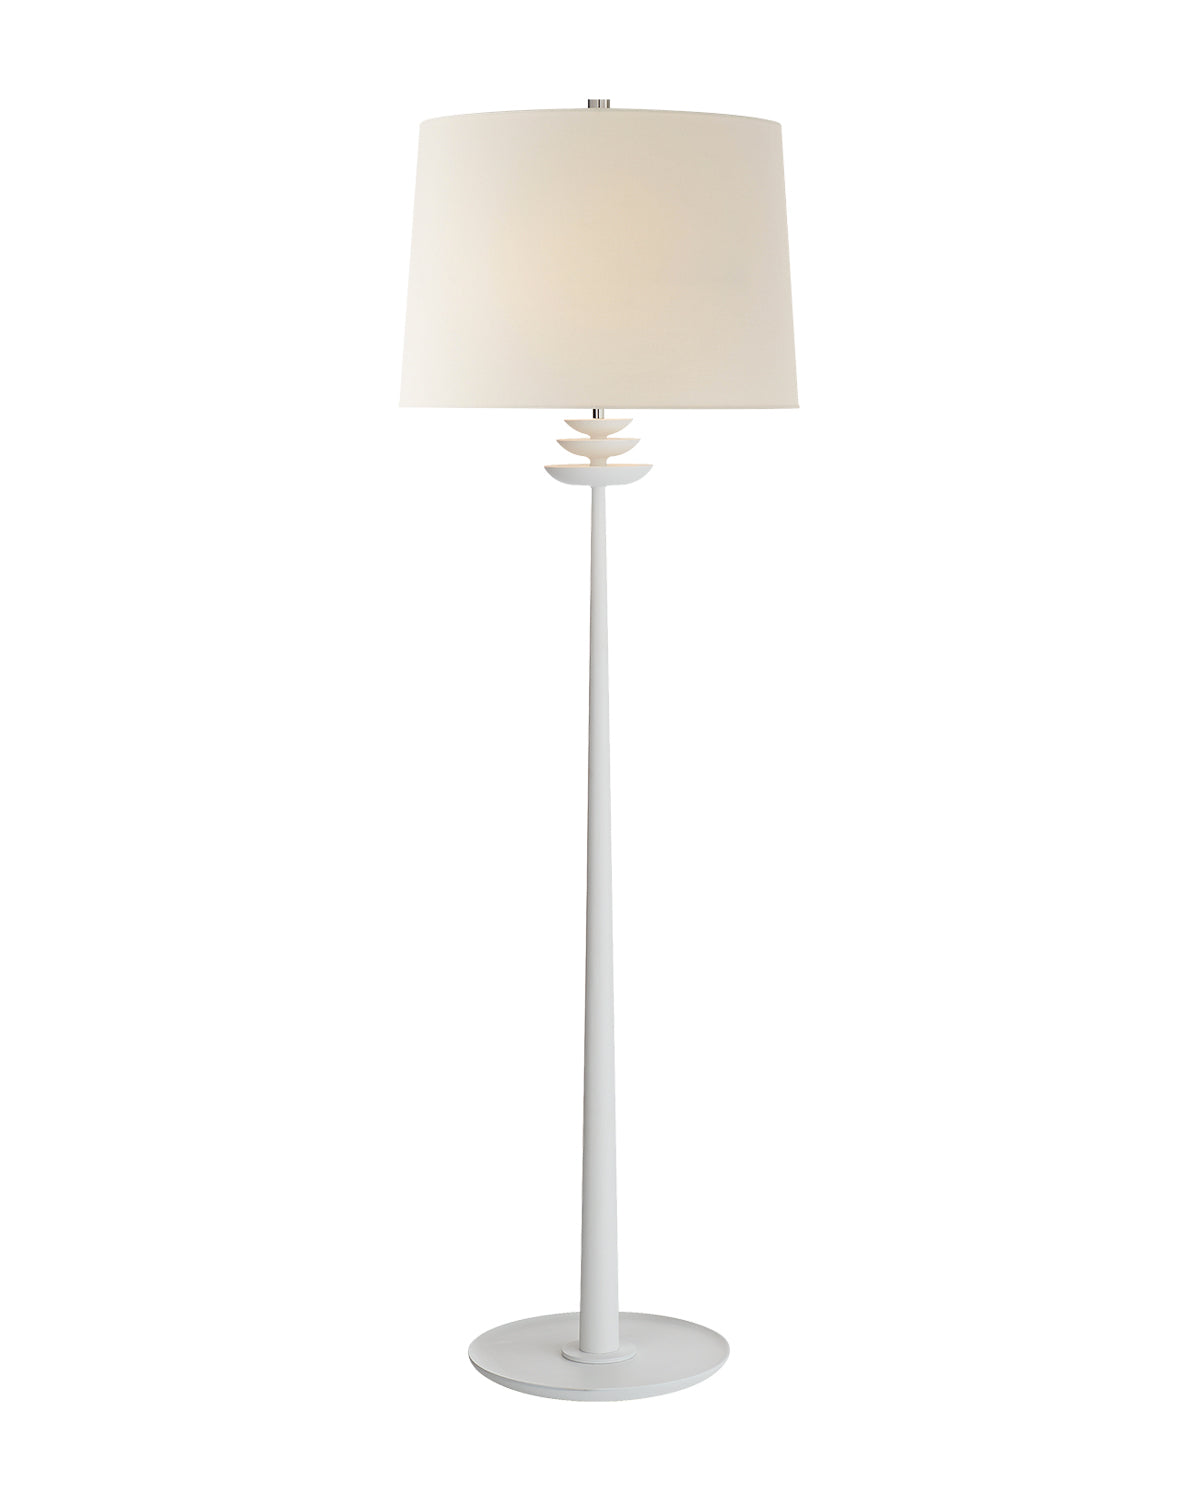 Beaumont floor lamp 1 jpgv1535063255